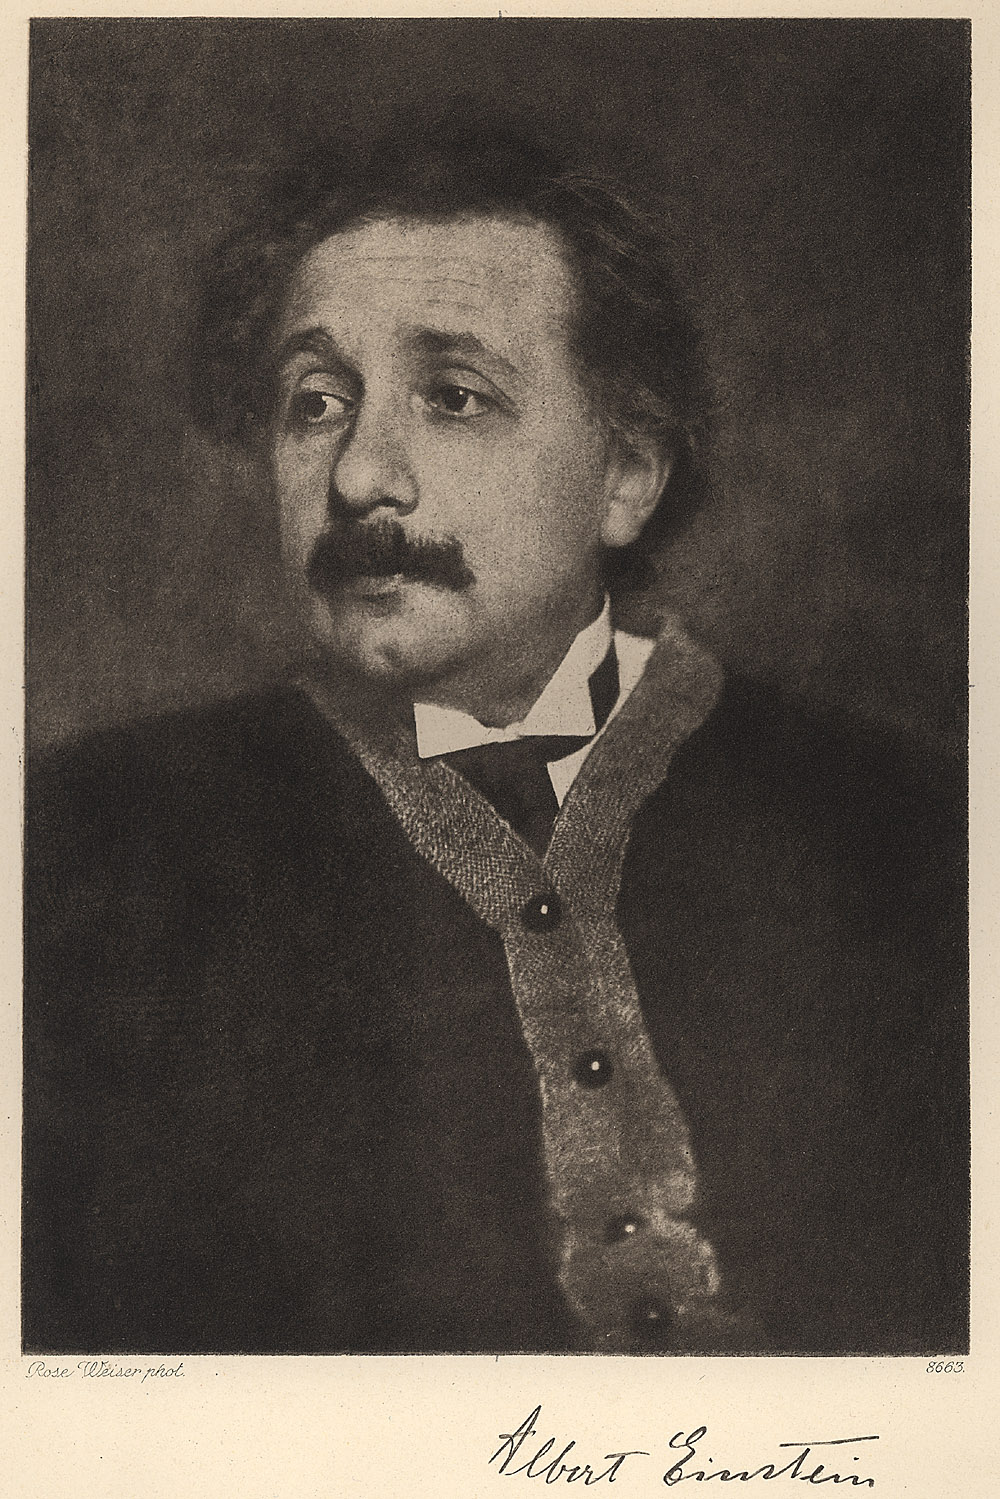 Portrait of Albert Einstein, Scientific Identity: Portraits from the Dibner Library of the History of Science and Technology, 2003